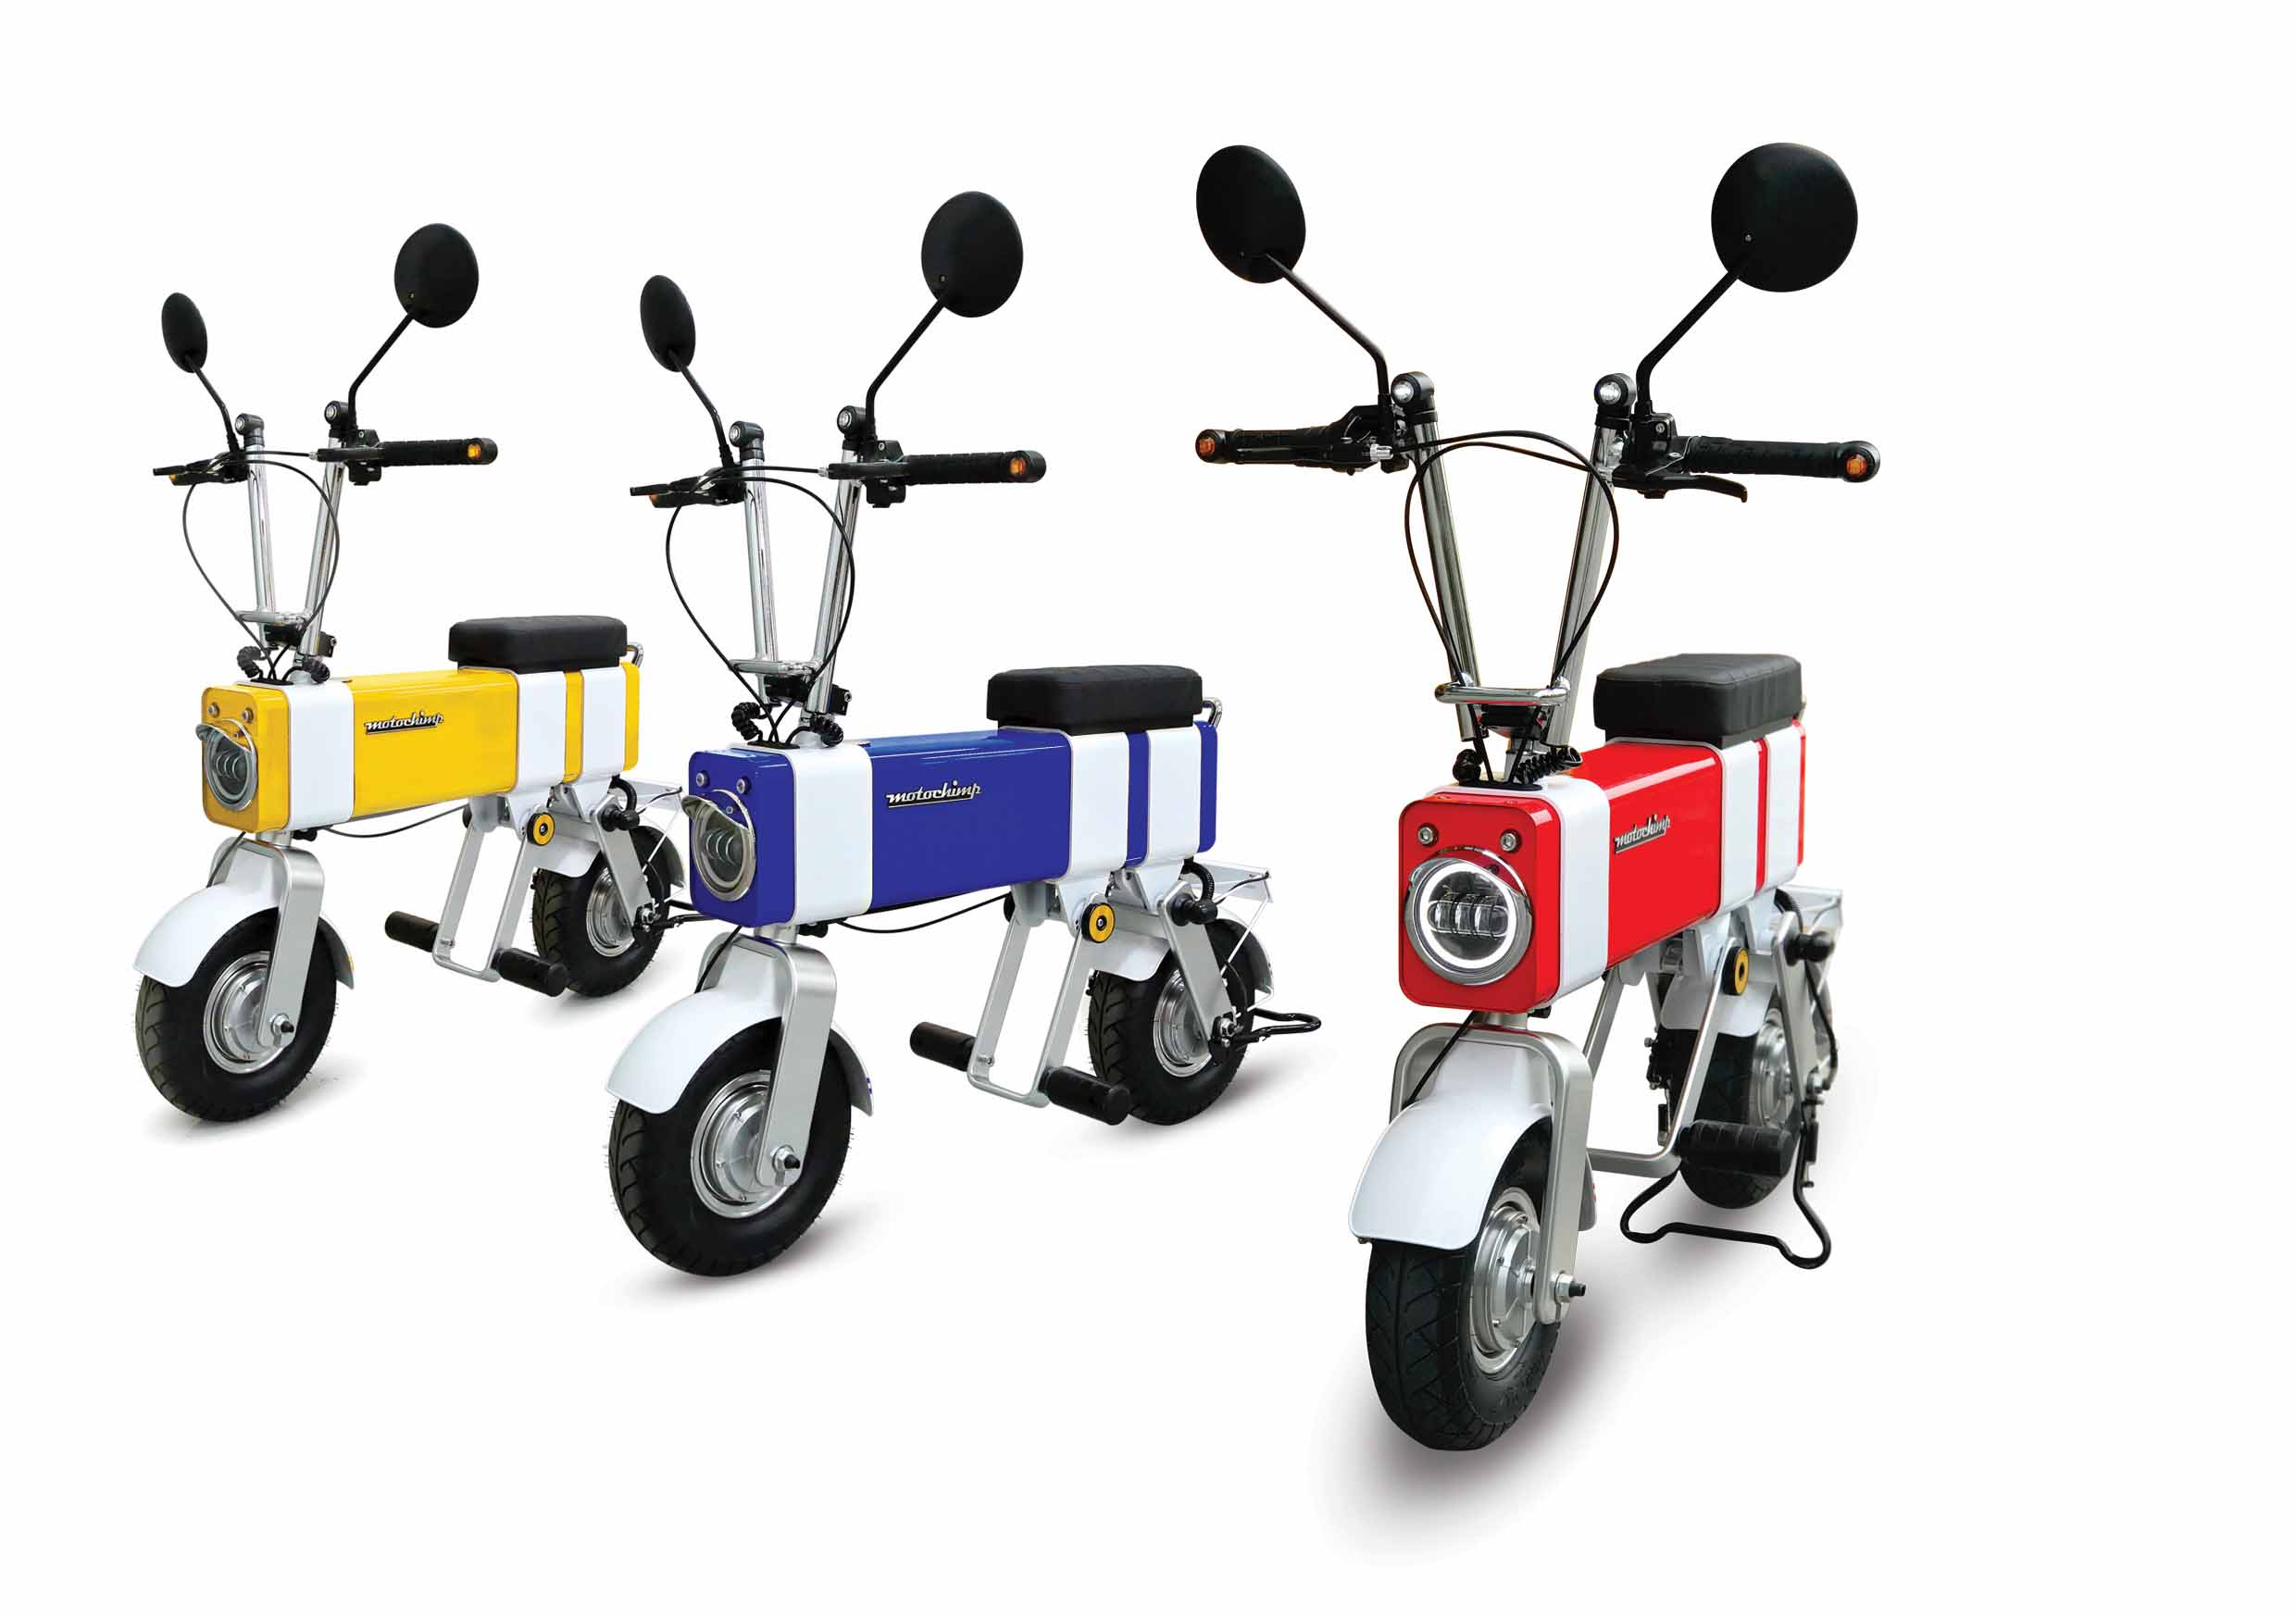 The Motochimp scooter is another of Vanda Electrics' innovations, and is being sold in Japan, China and Singapore